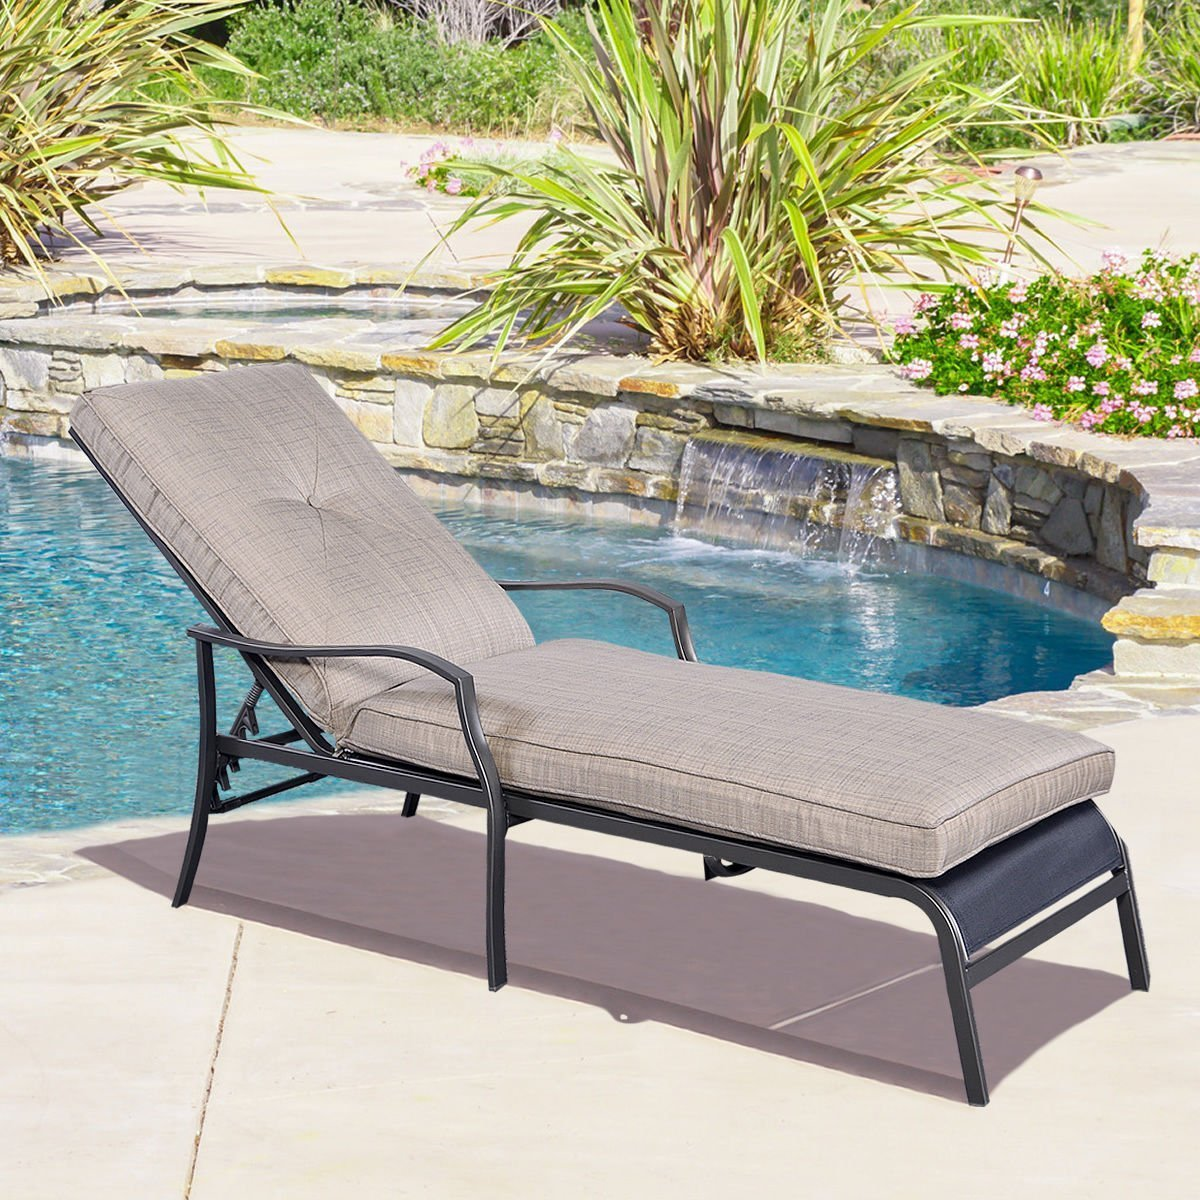 Pool Chaise Lounge Chair Recliner Outdoor Patio Furnitu Lounges